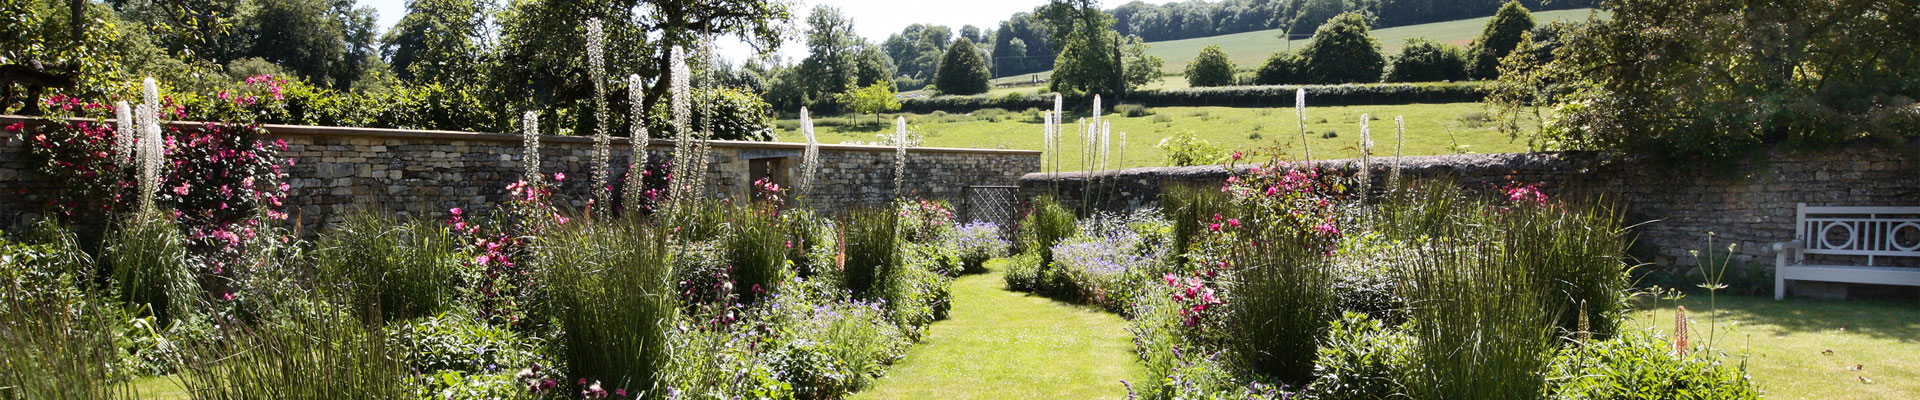 Photo of the beautiful gardens at Arisan Barn